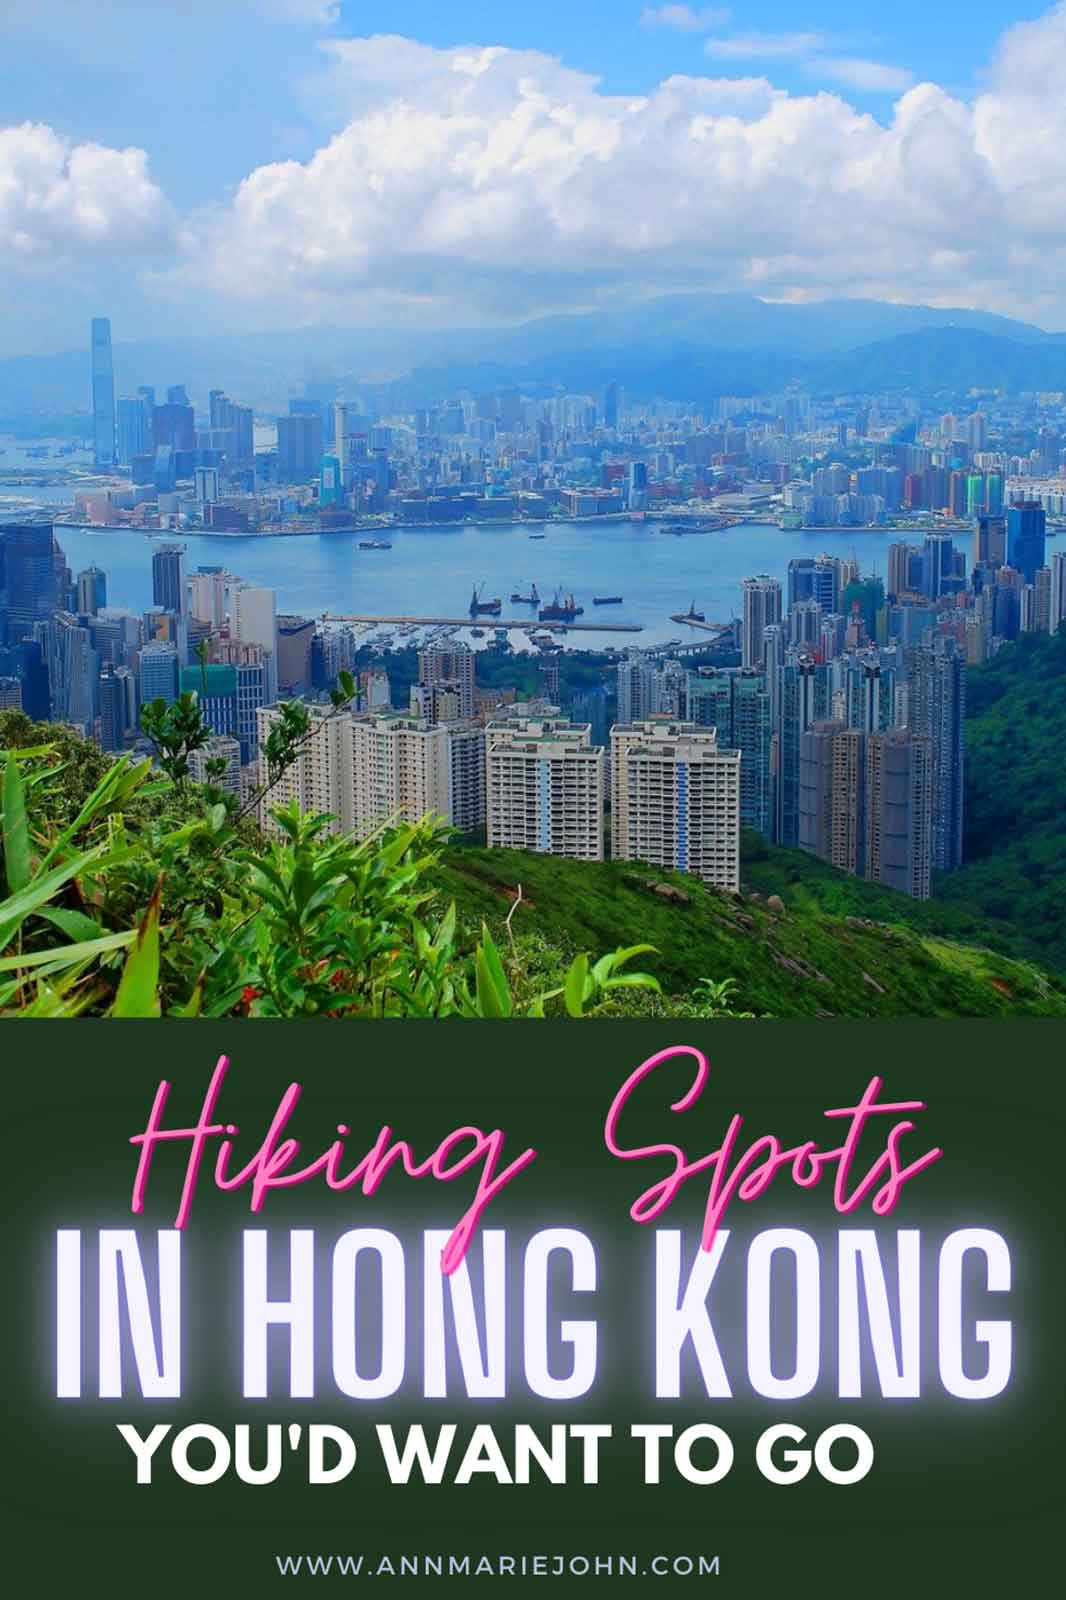 Hiking Spots in Hong Kong You Would Want to Go